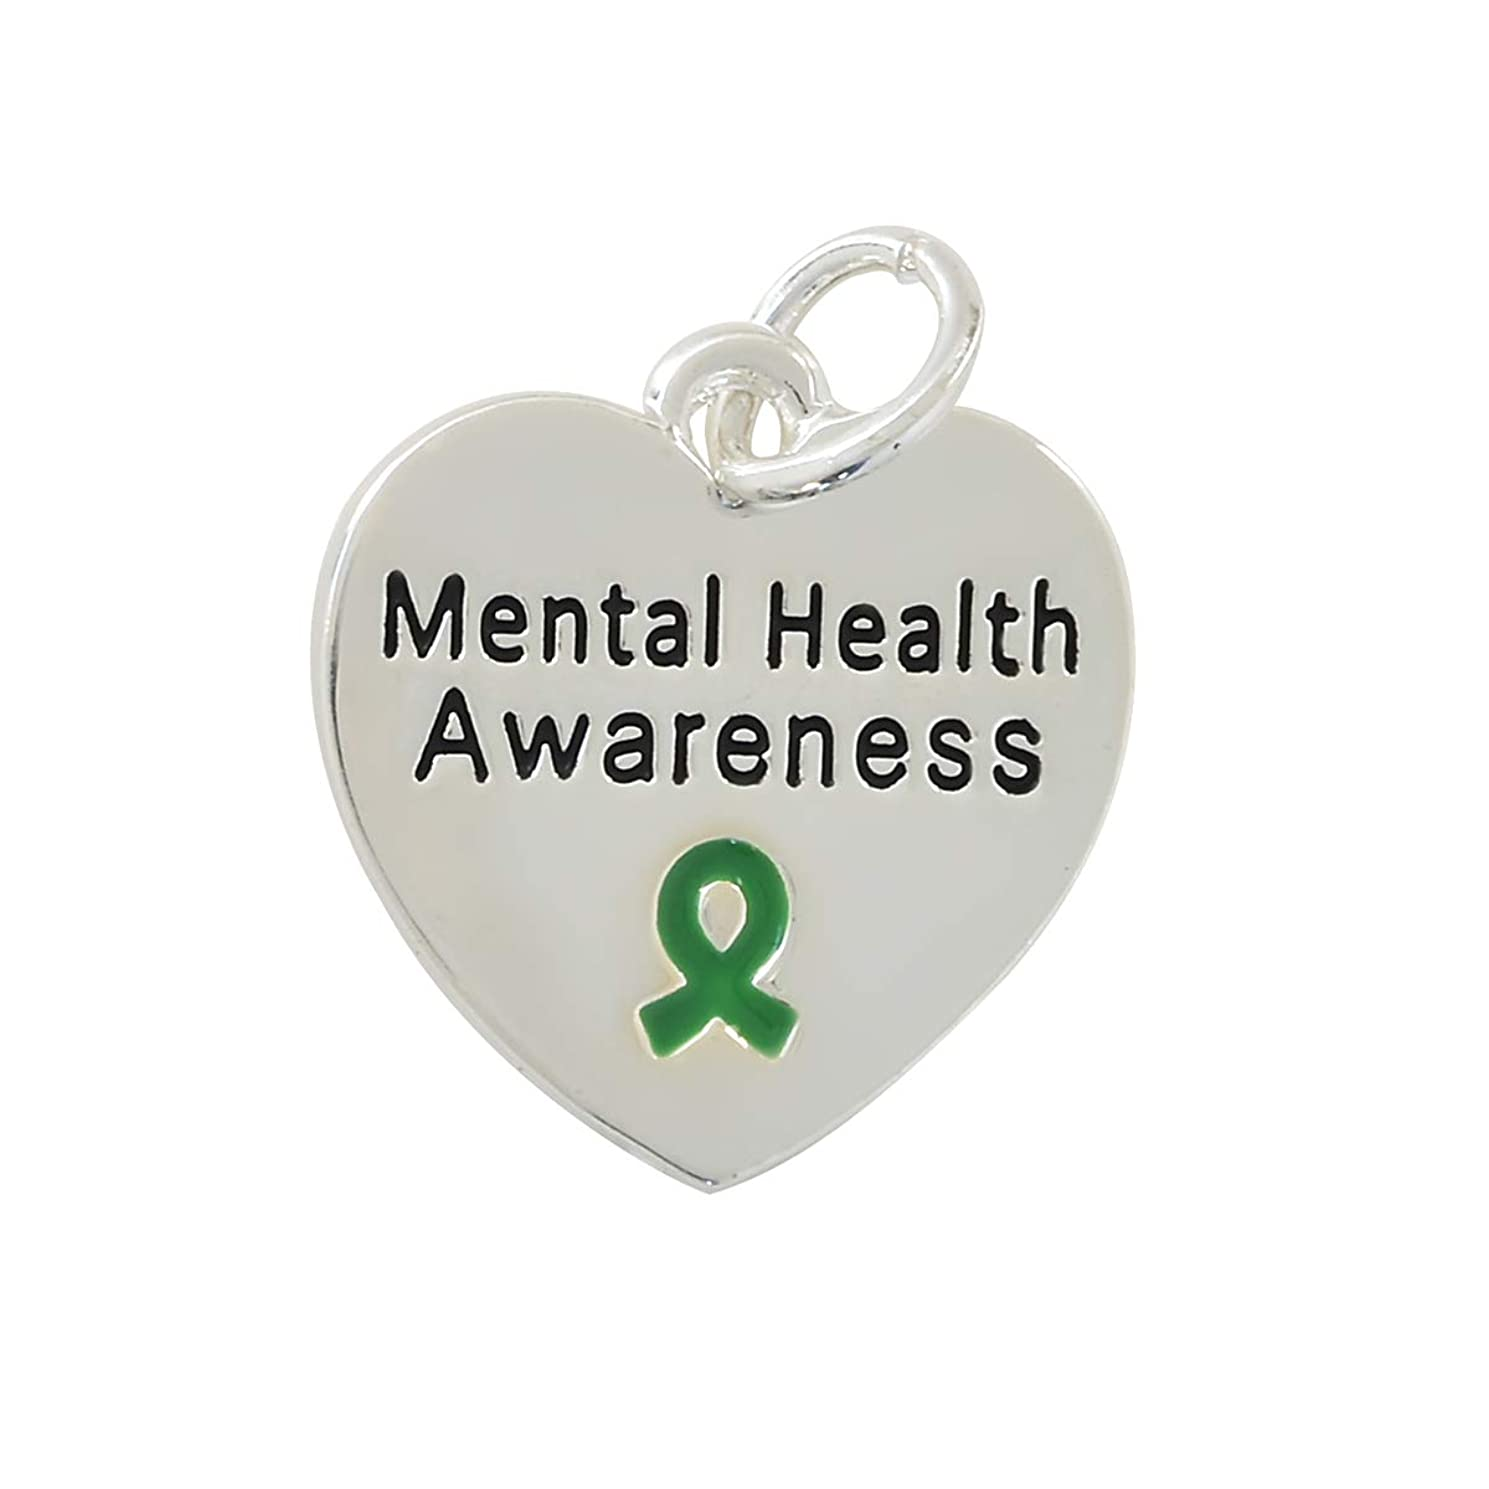 Mental Health Awareness Heart Charms (25 Charms in a Bag)